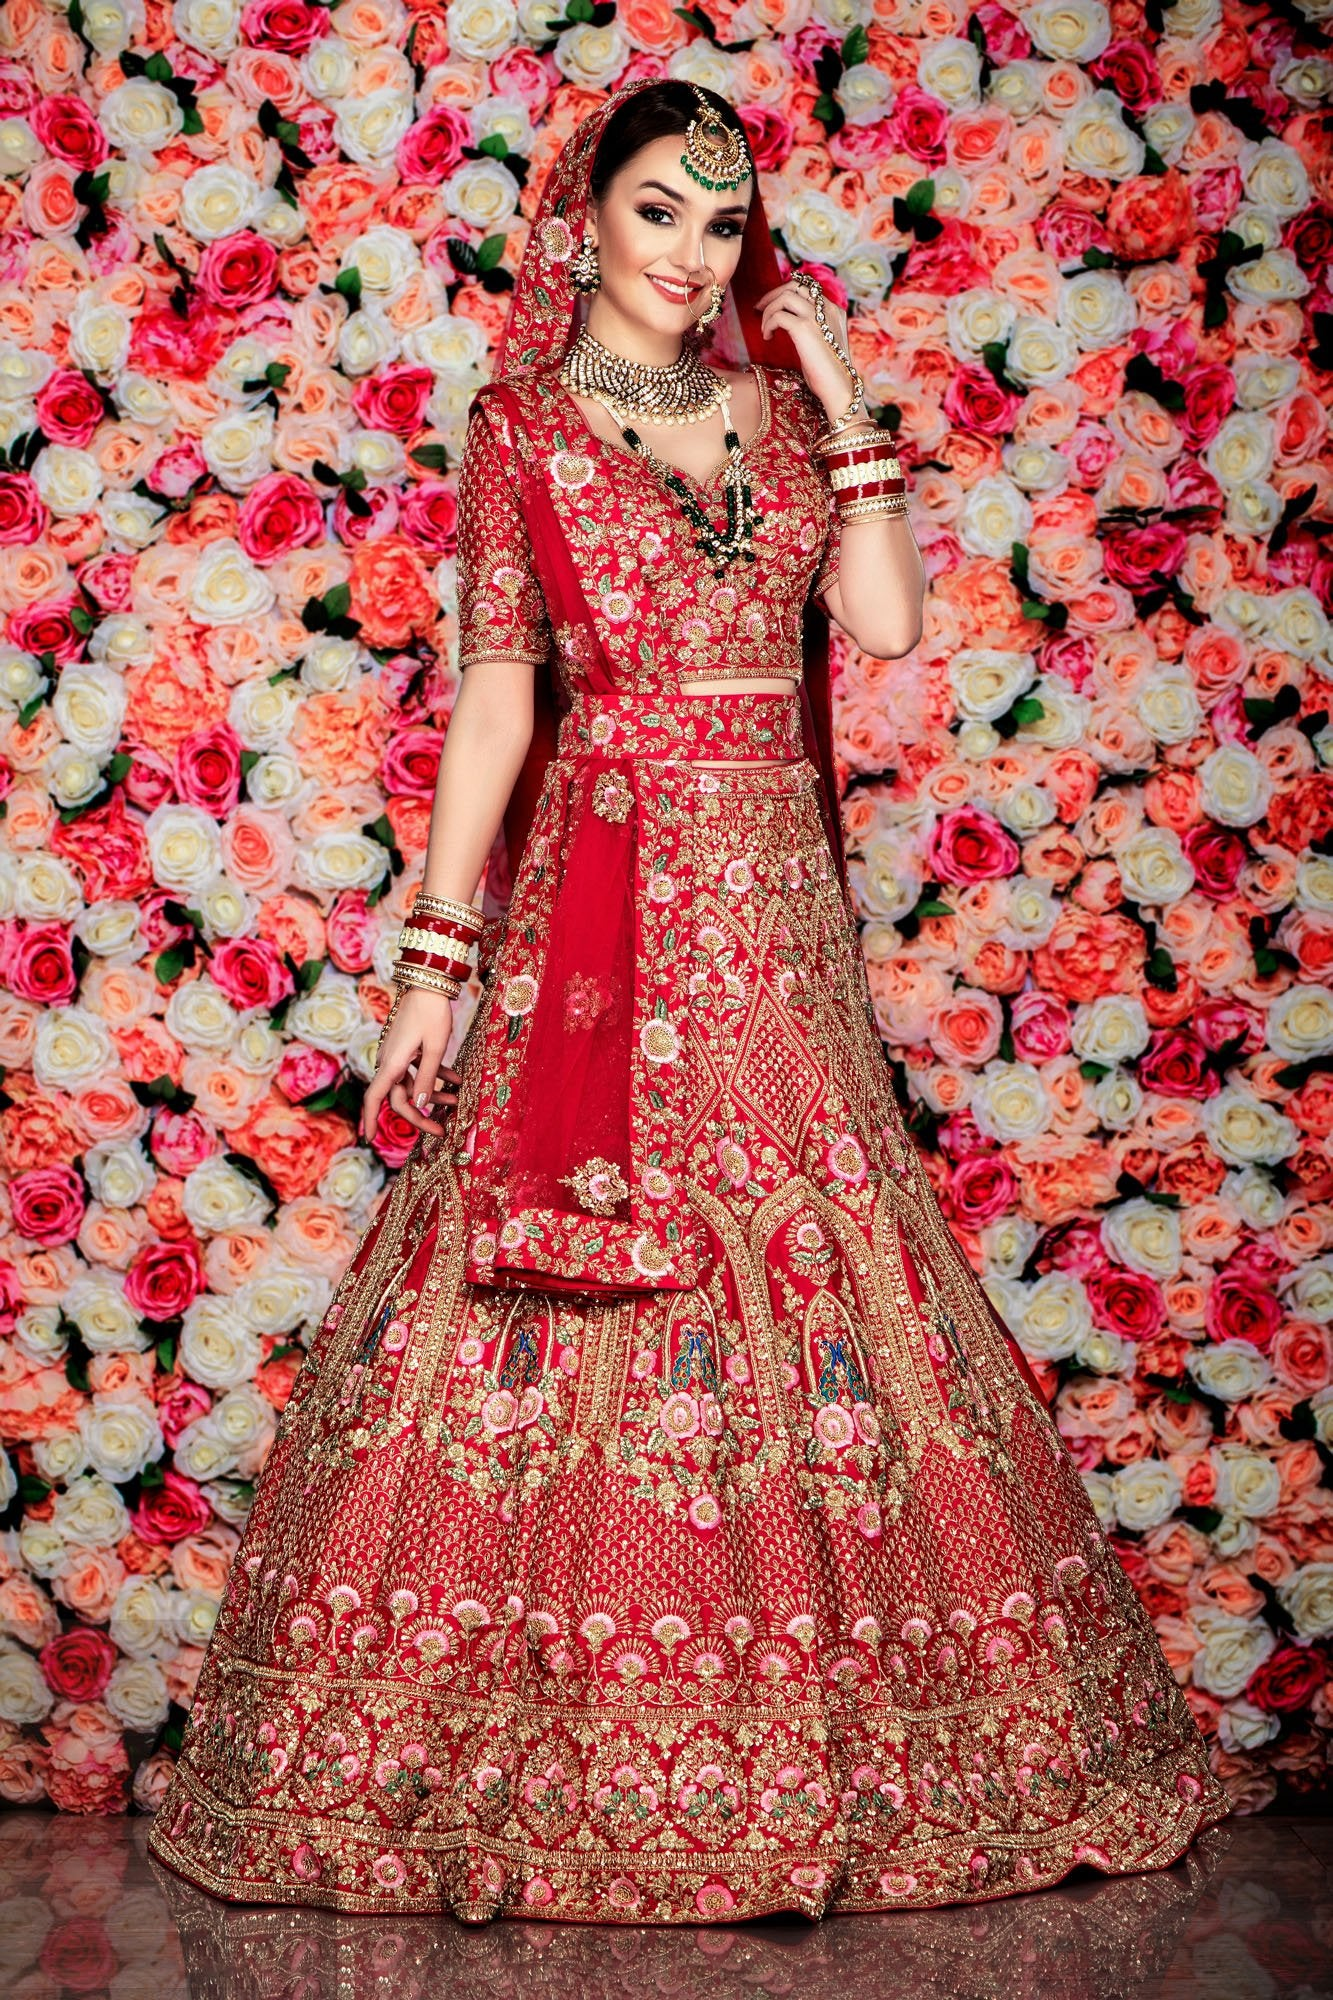 Red Bridal Heavy Embroidered Lehenga with thread work